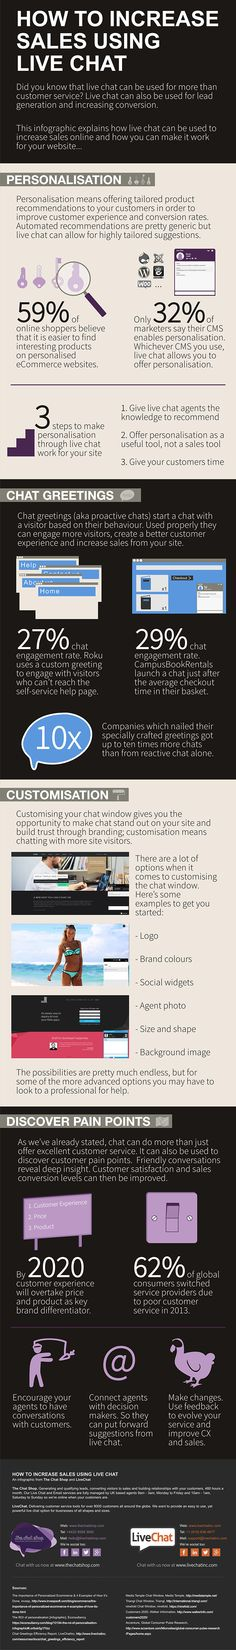 How to increase sales using live chat